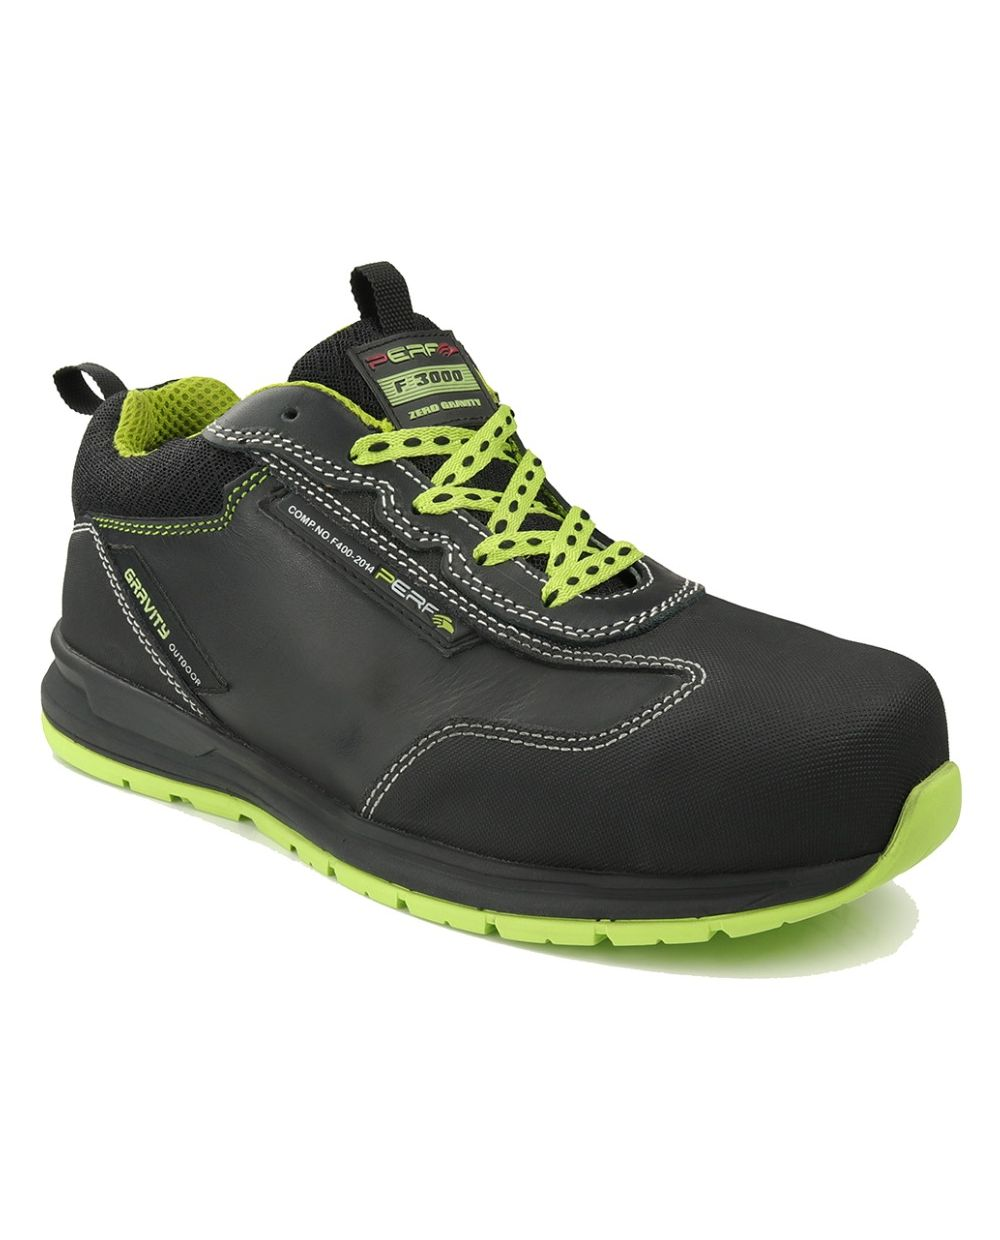 Gravity 22 Vibram Leather Trainer